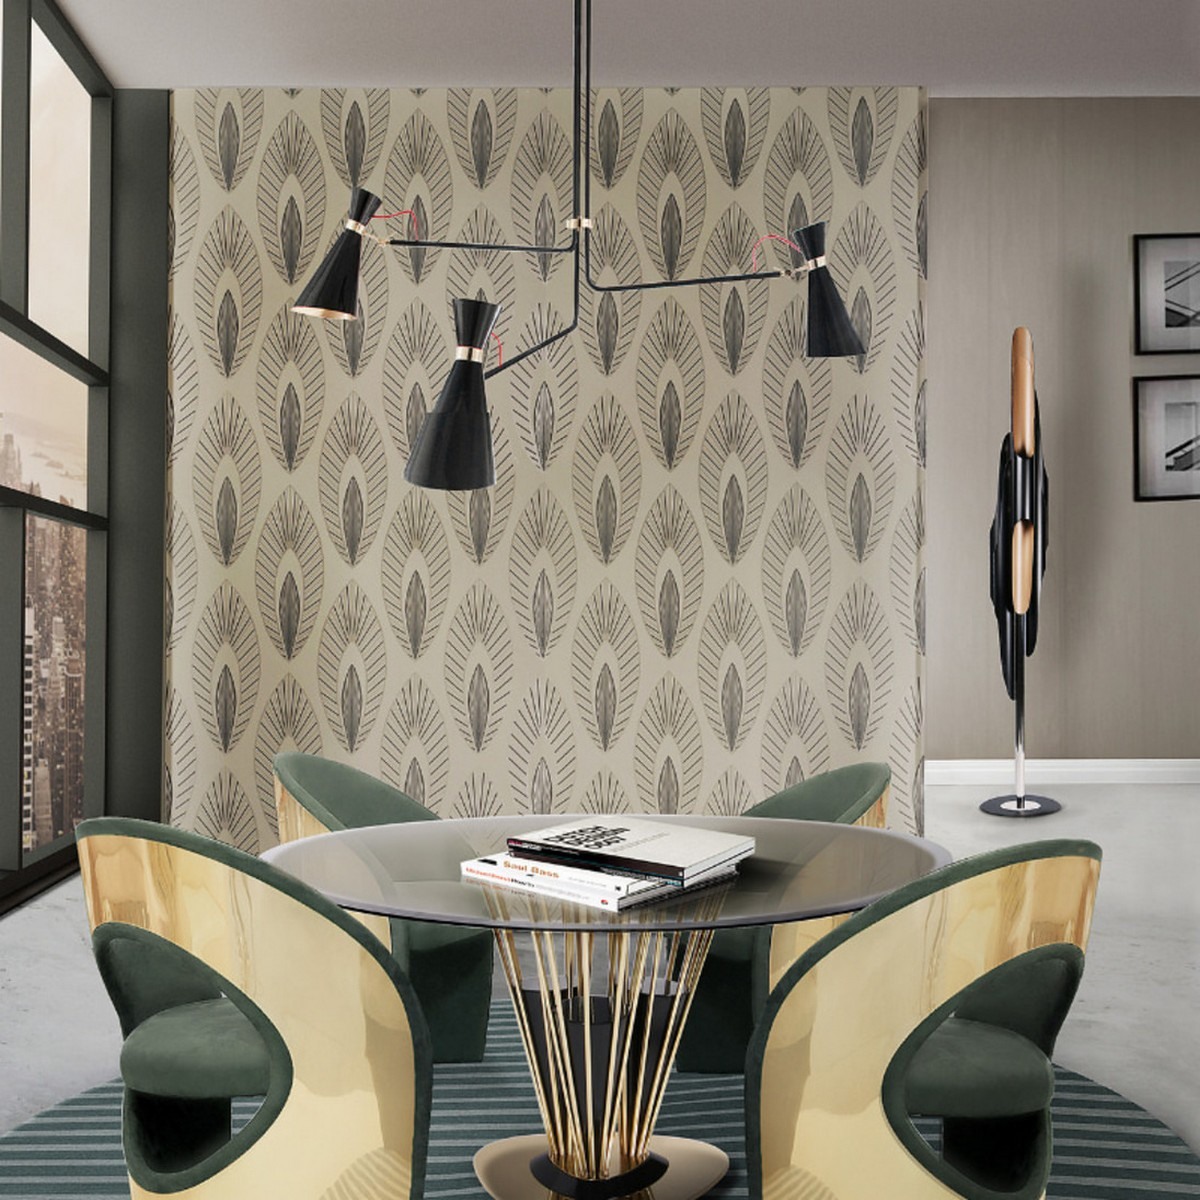 Maison et Objet 2019: Exclusive Dining Chairs at Covet House Maison et Objet Maison et Objet 2019: Exclusive Dining Chairs at Covet House jones2